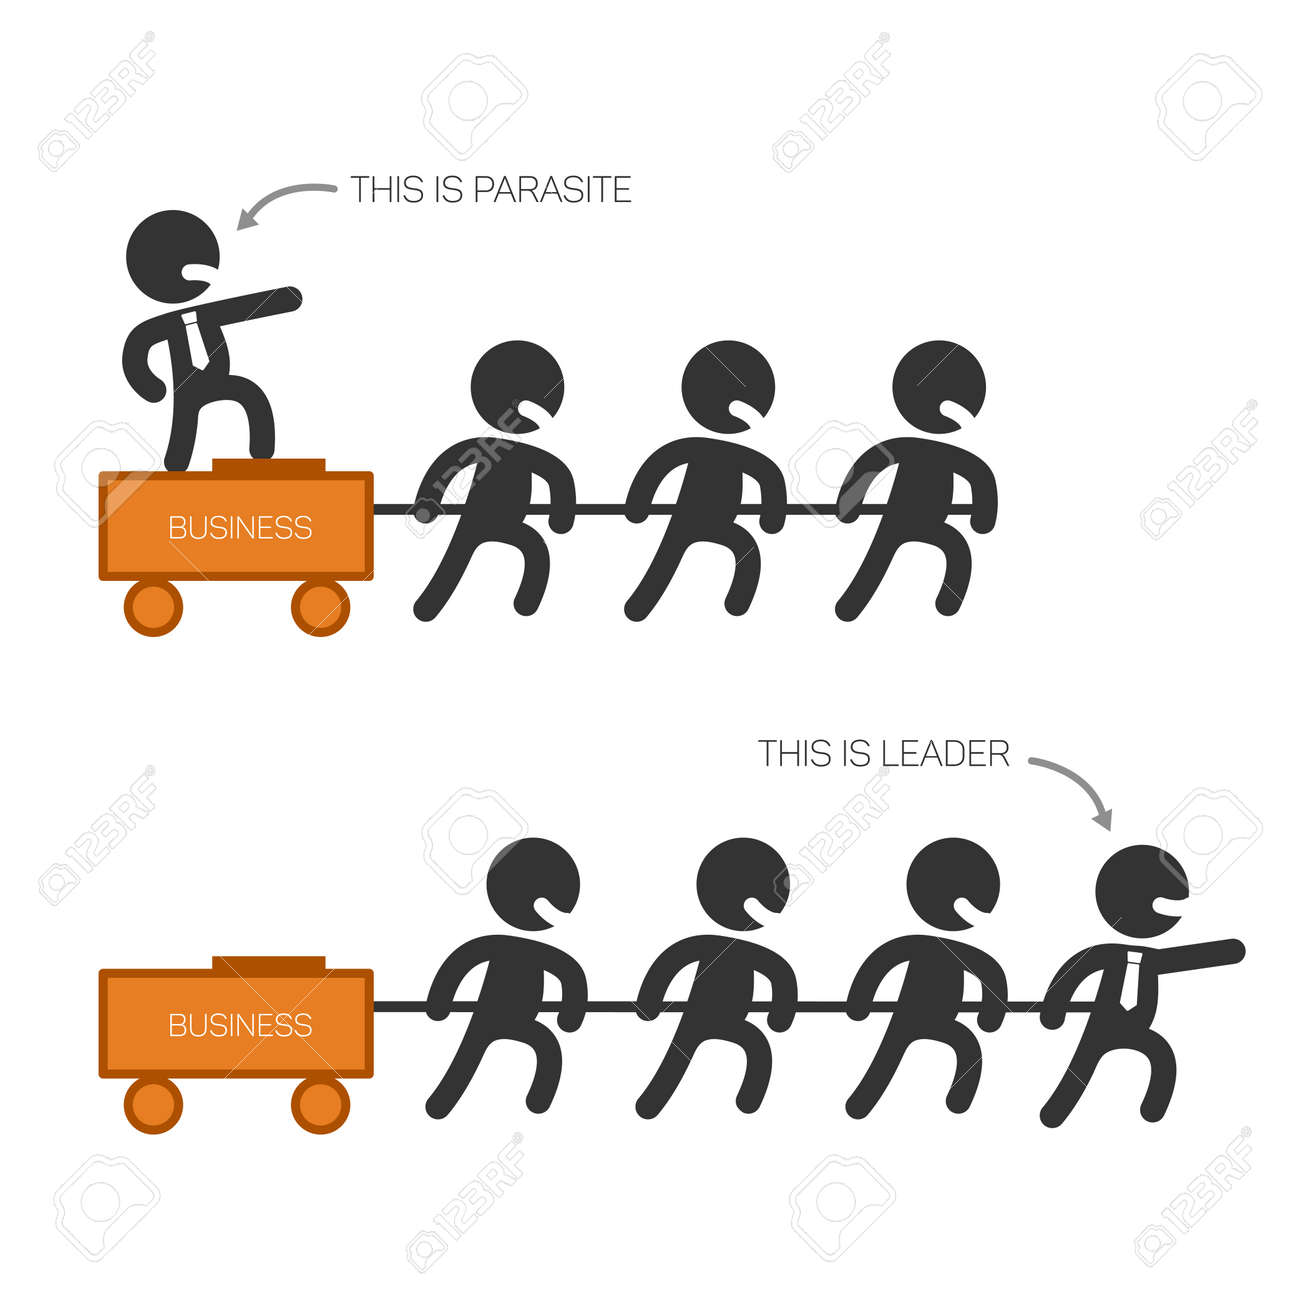 Boss vs leader, leadership concept, illustration about different strategies of management, cartoon style - 53823510